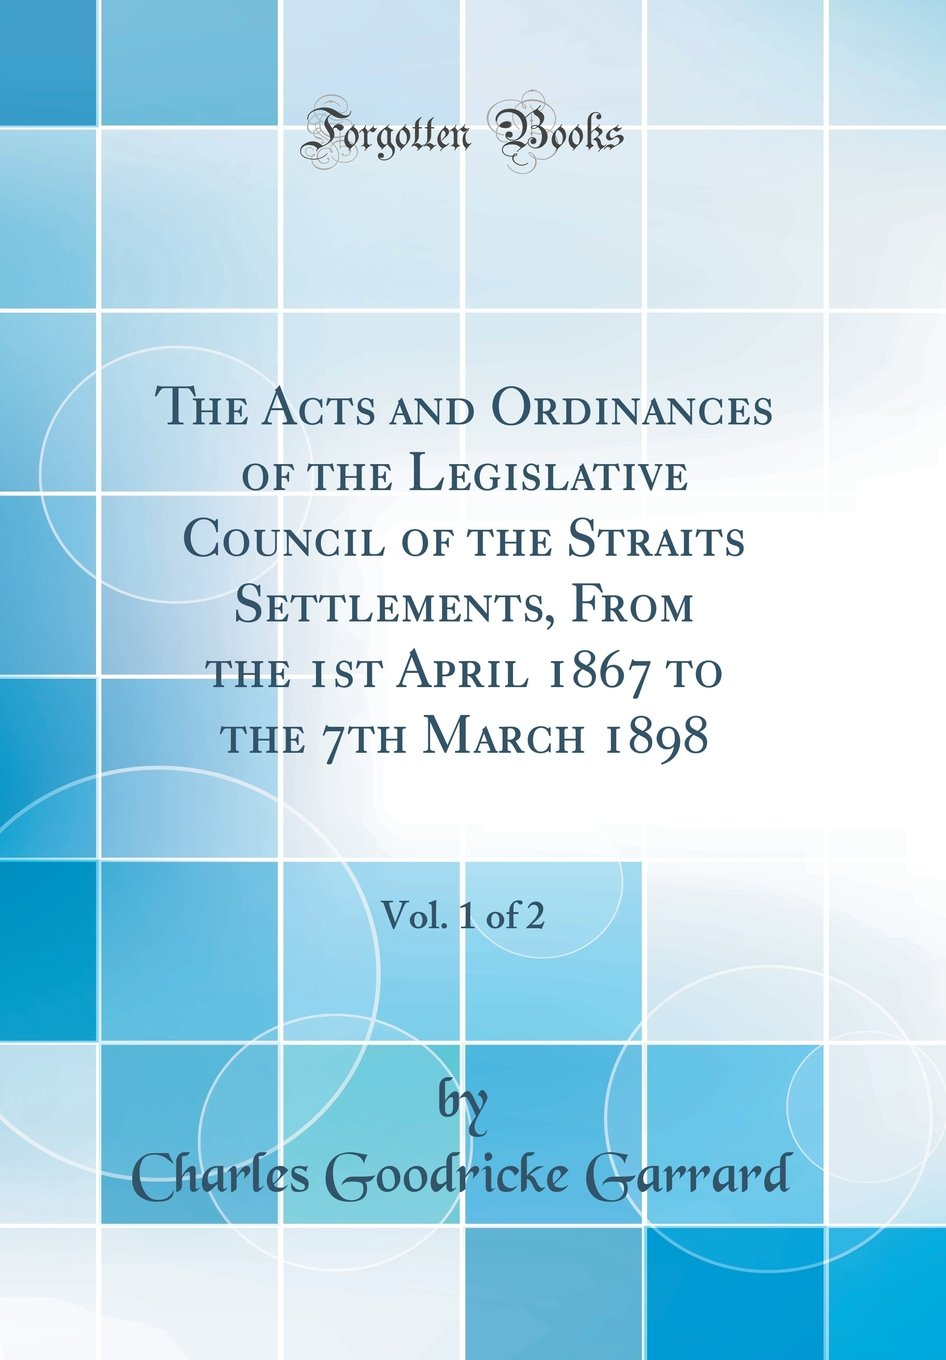 The Acts and Ordinances of the Legislative Council of the Straits Settlements, From the 1st April 1867 to the 7th March 1898, Vol. 1 of 2 (Classic Reprint) PDF